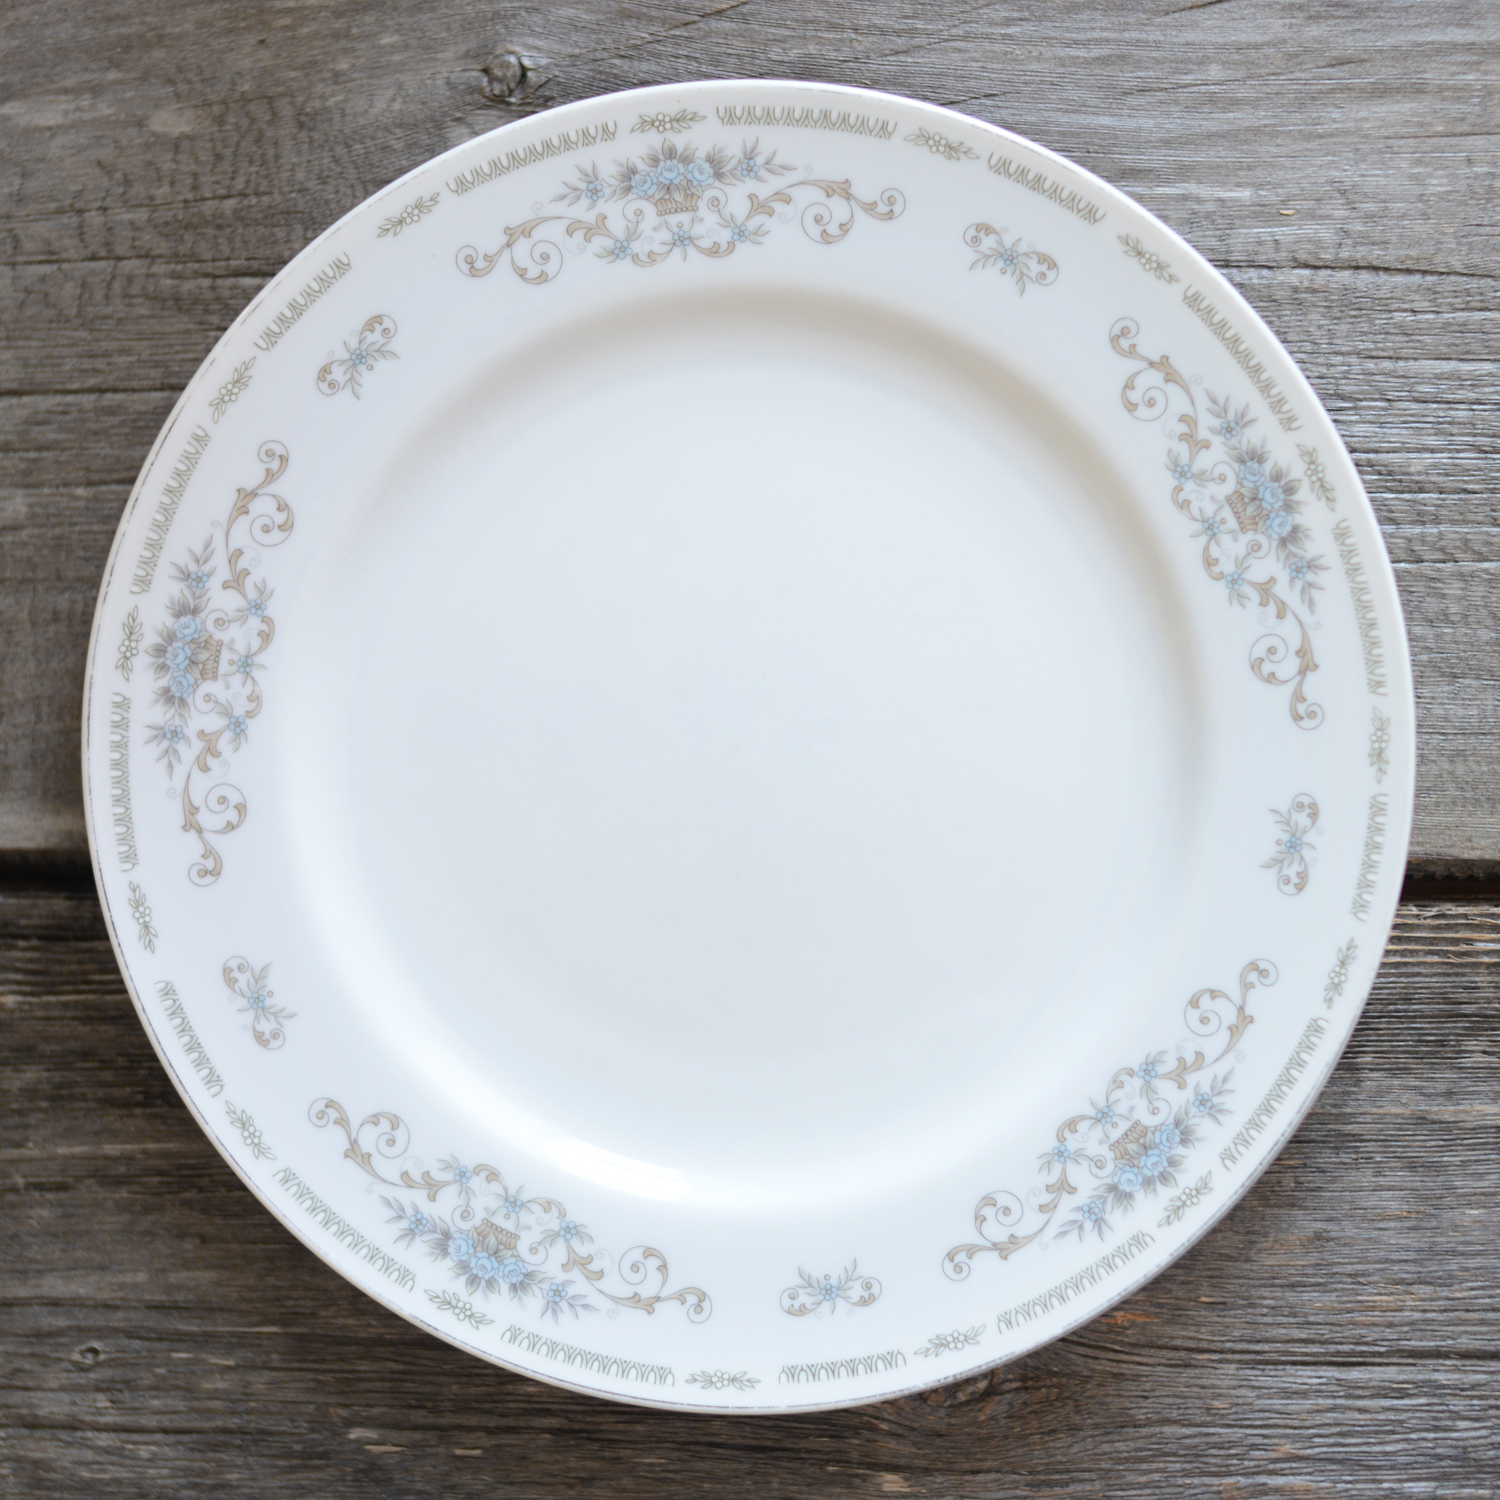 sheward dinner plate - 6 available